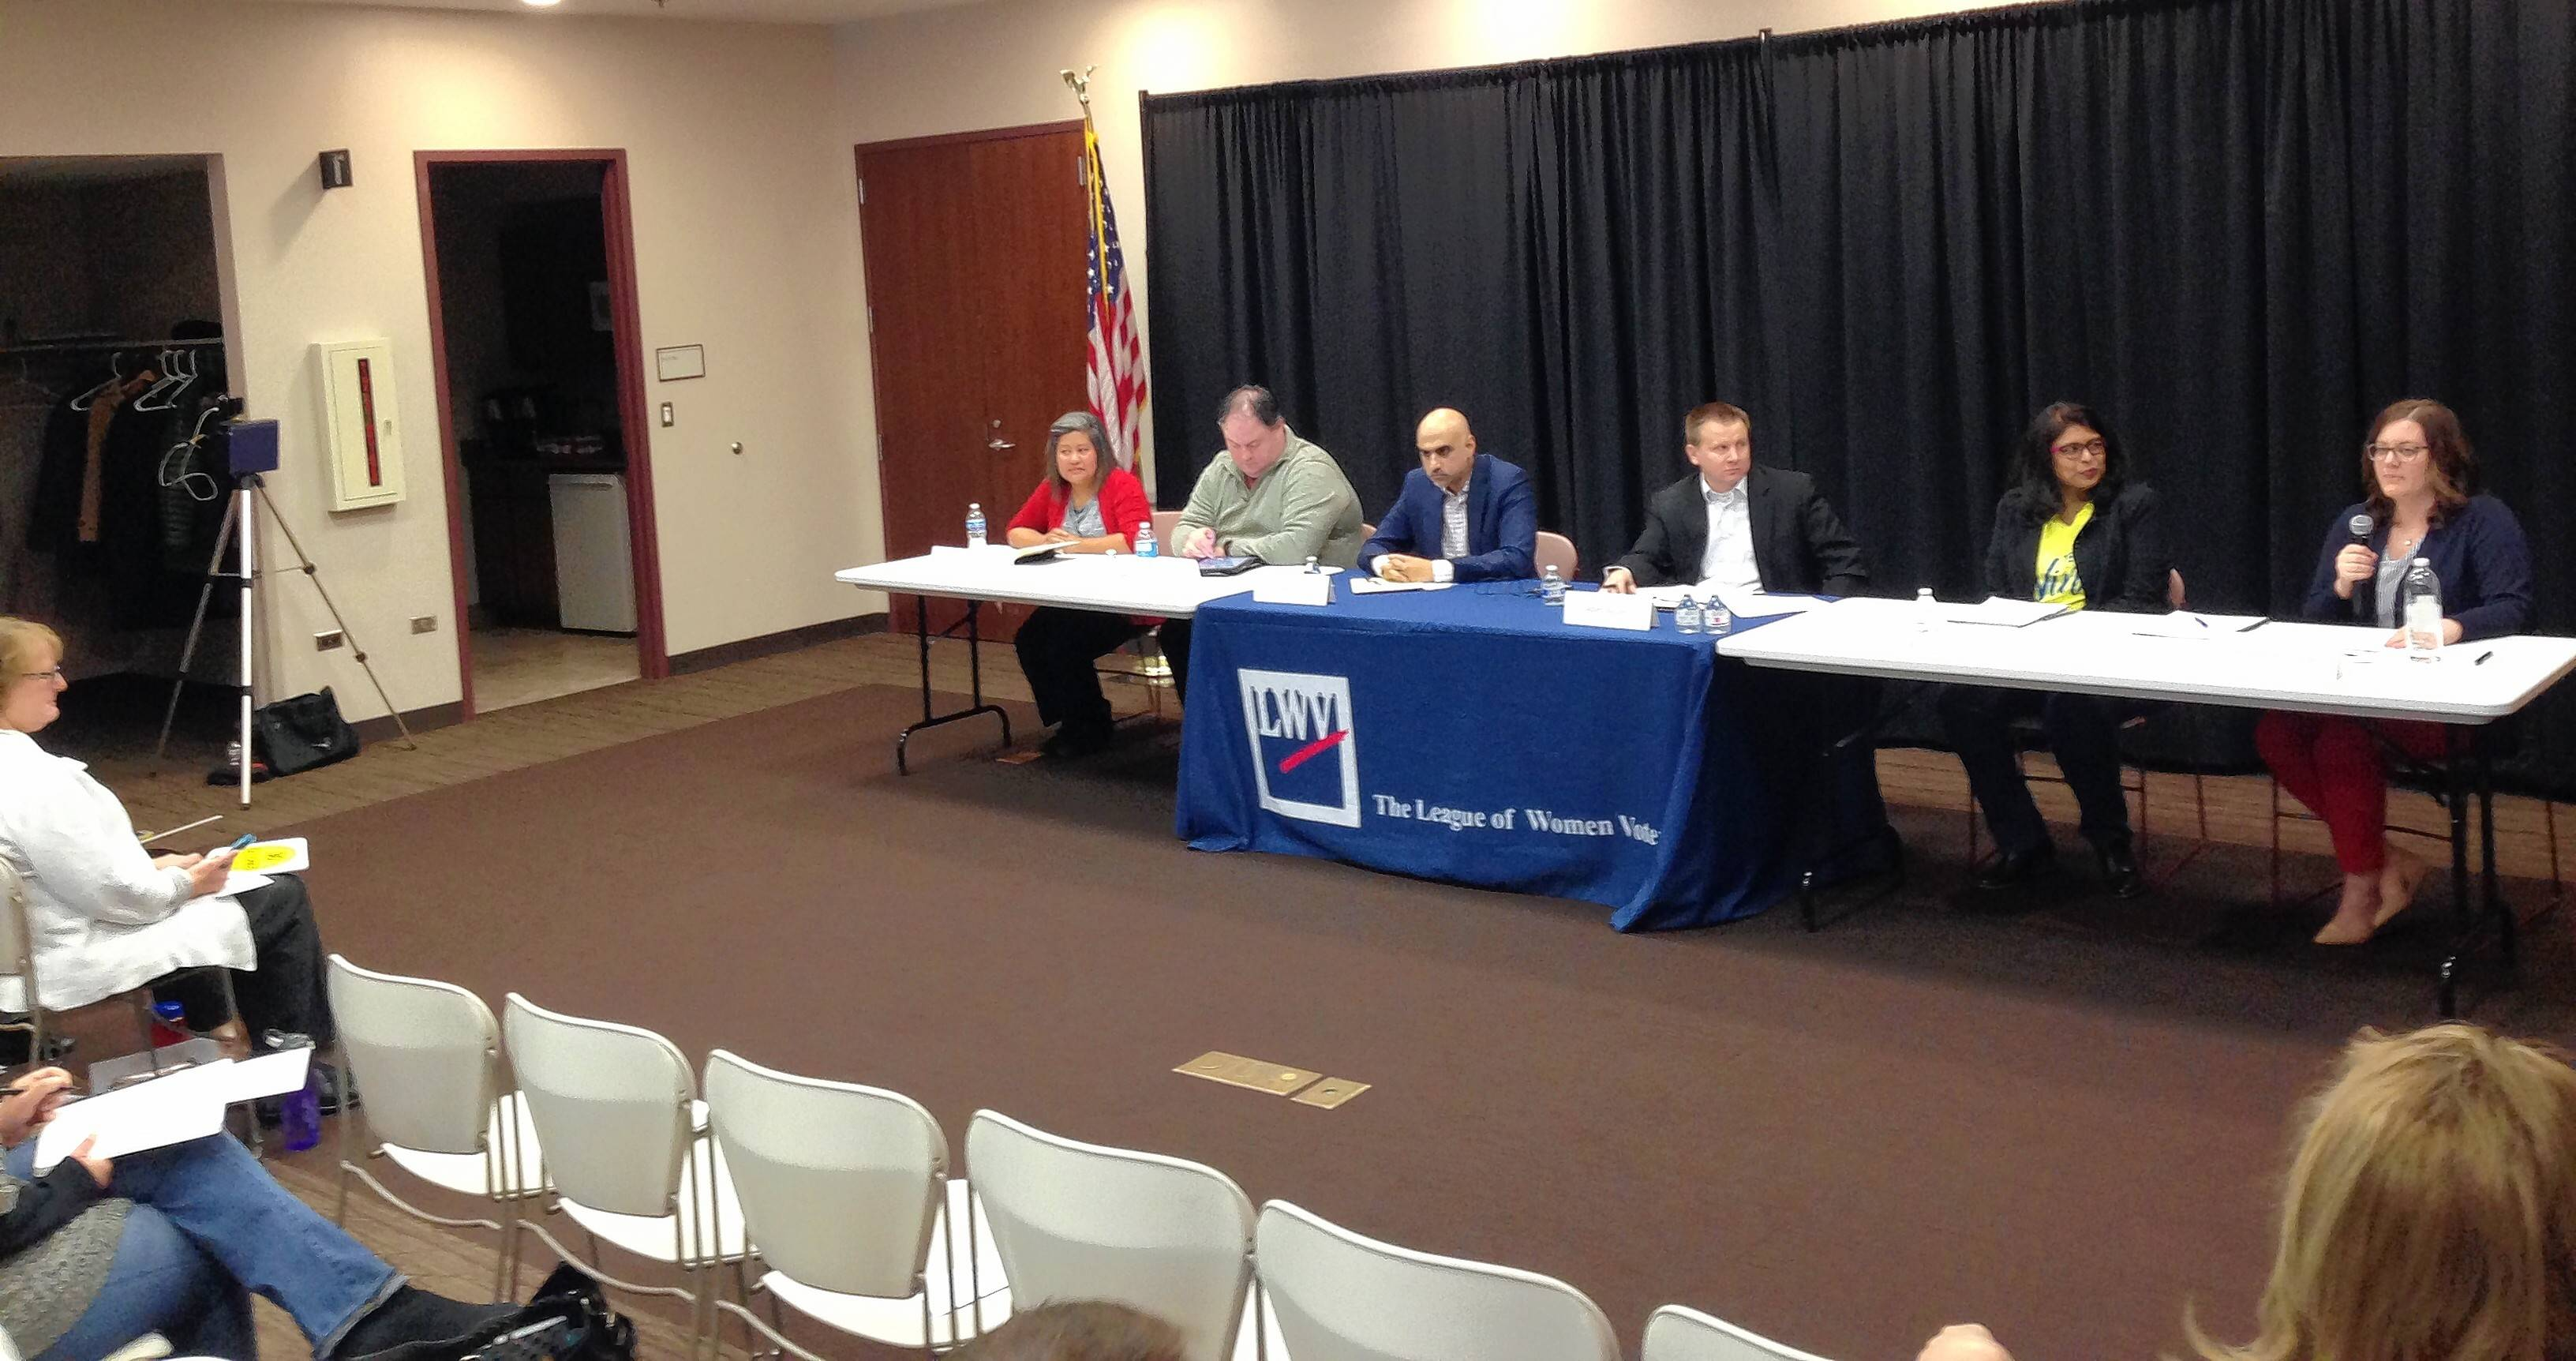 District 15 candidates address priorities at League of Women Voters forum